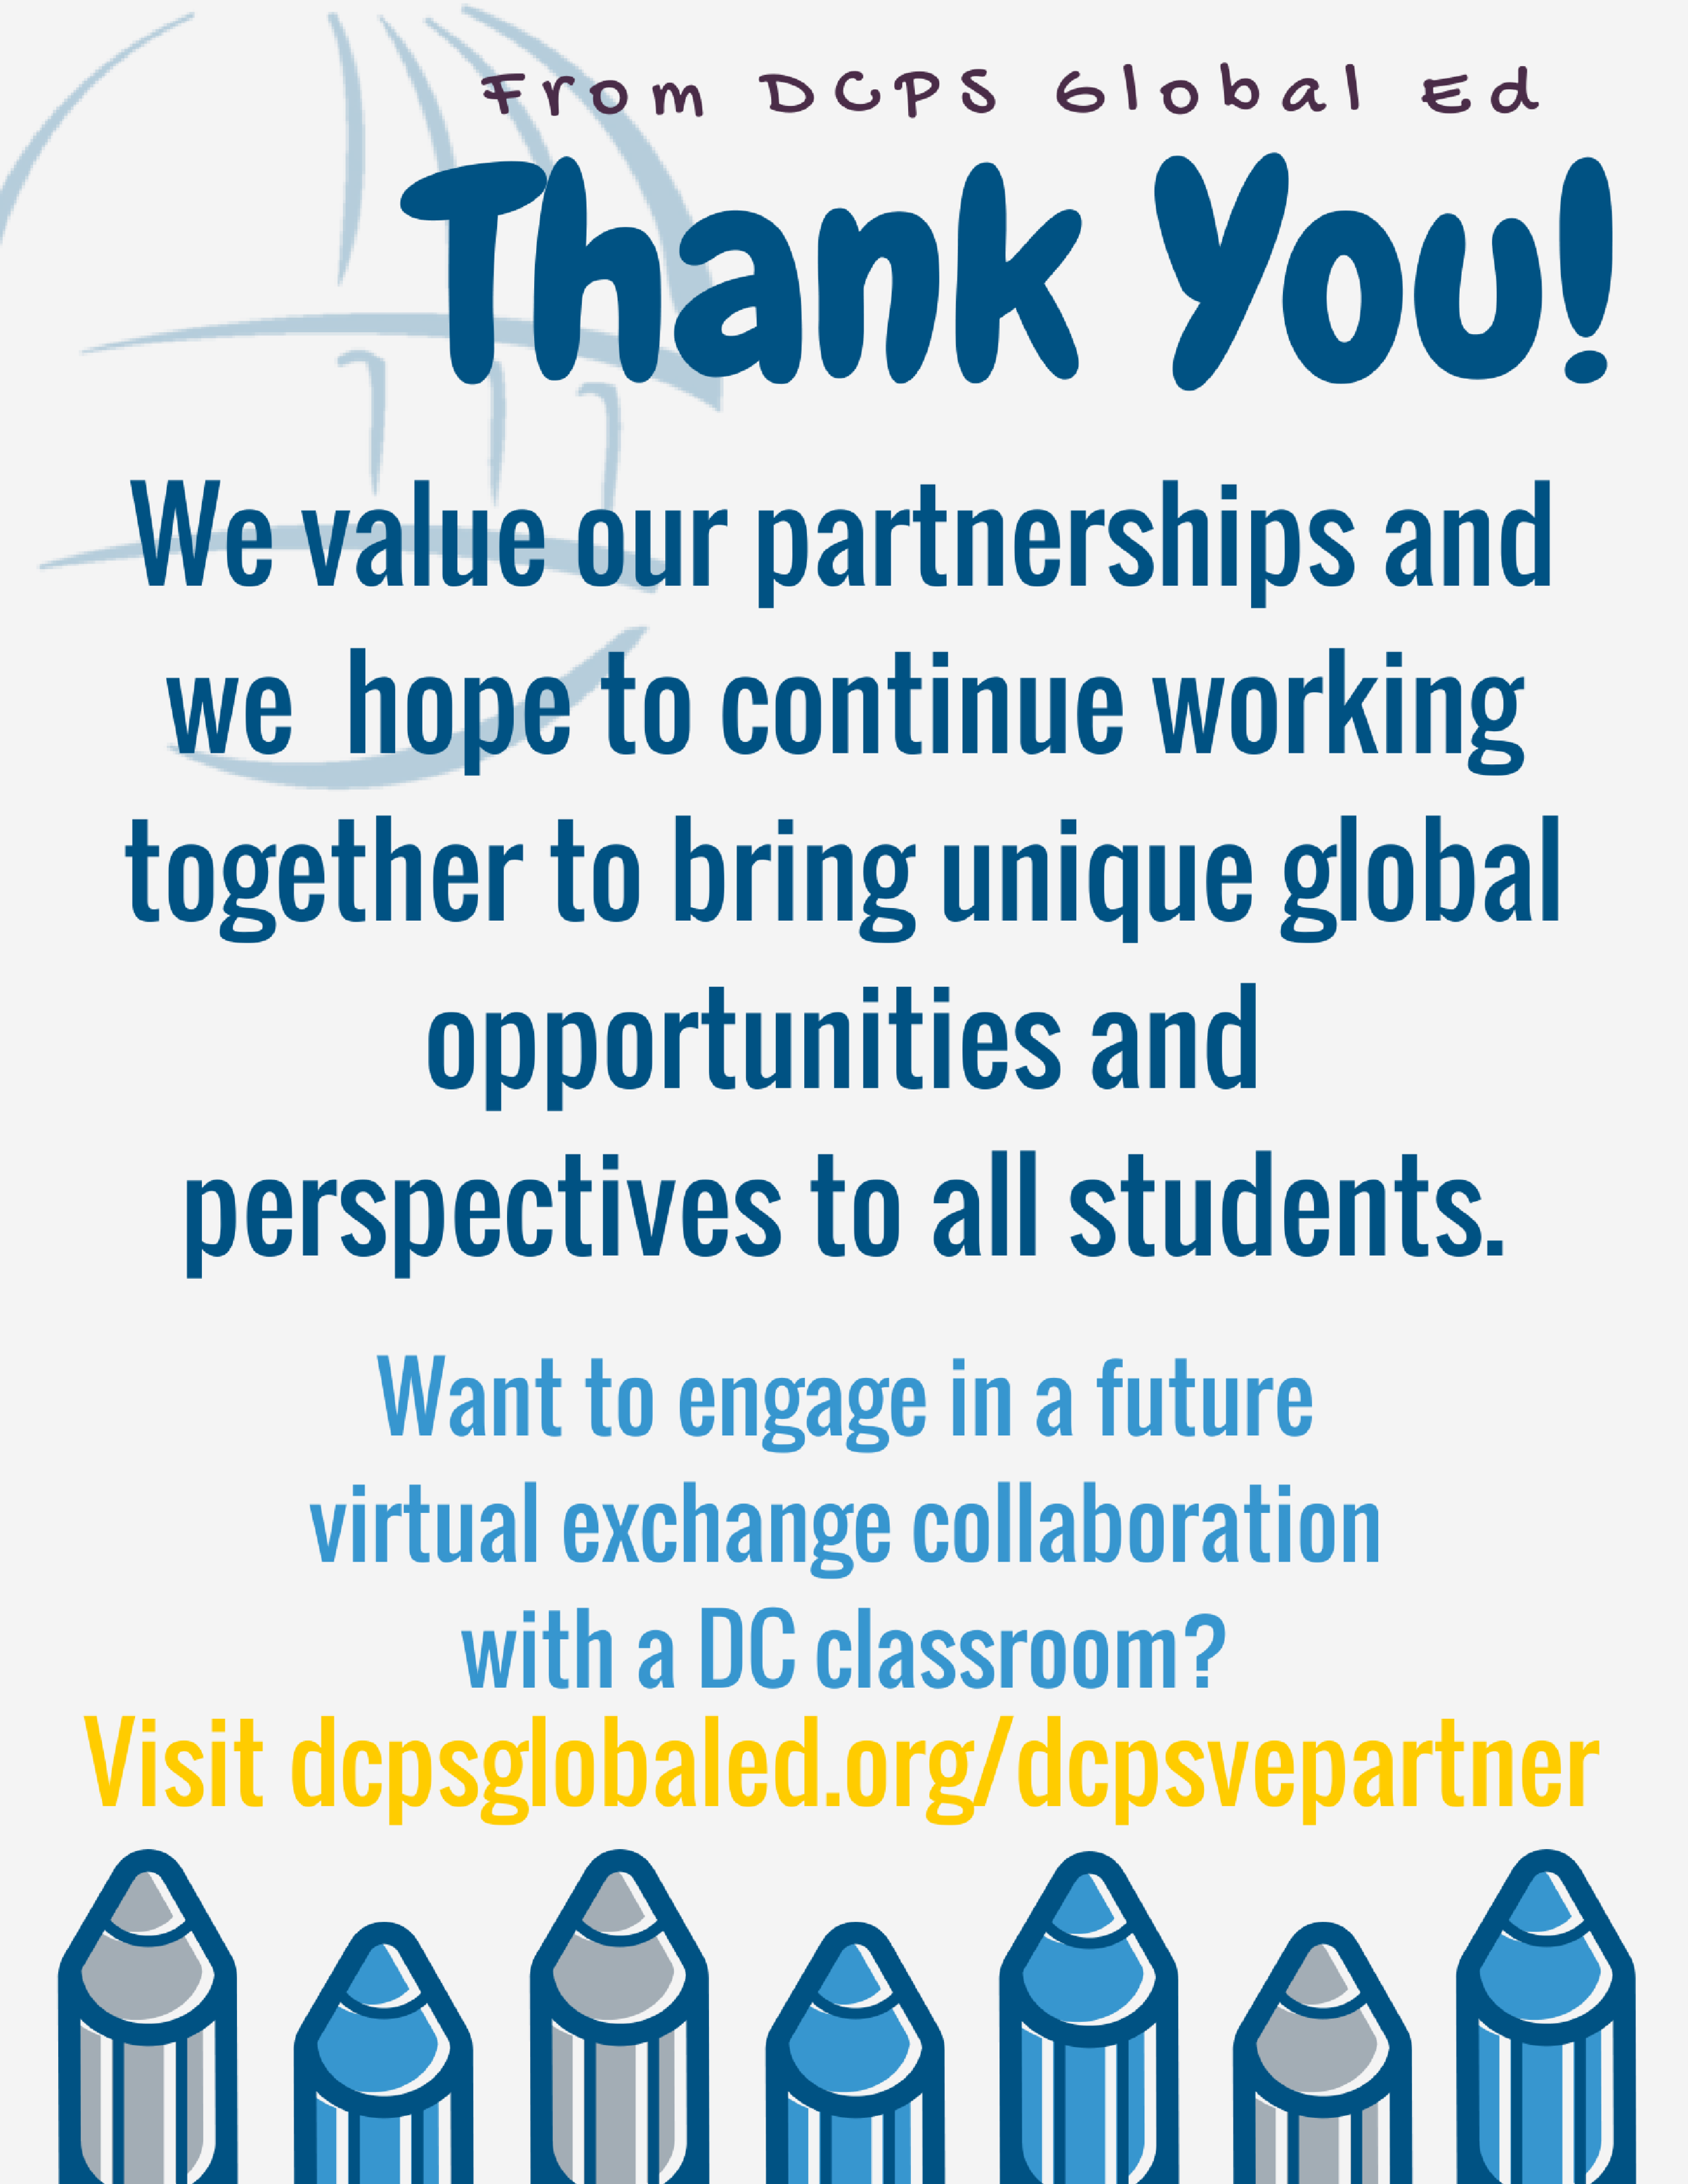 DCPS Global Ed Thank you.png